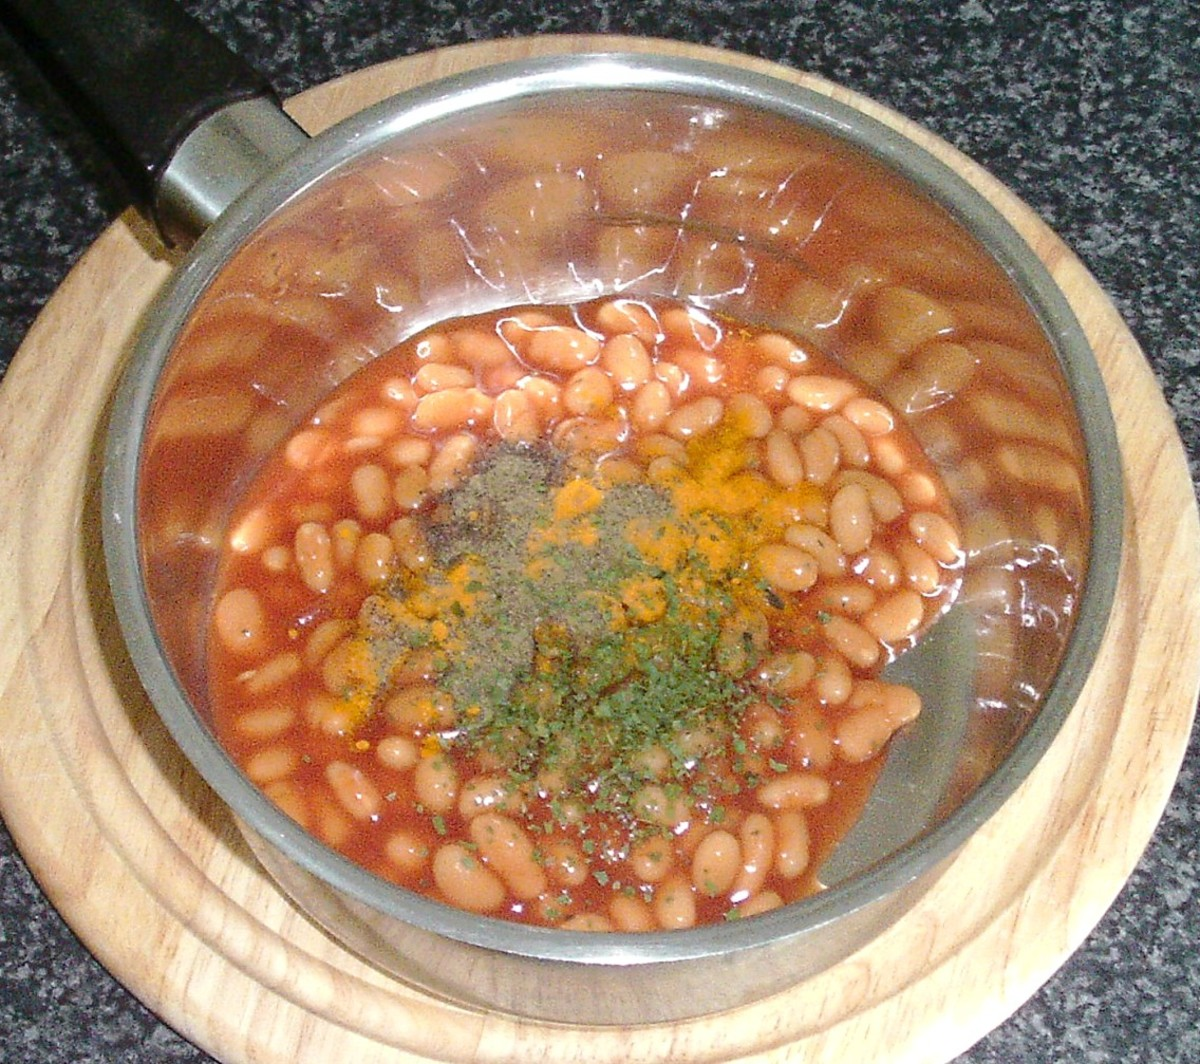 Additional seasonings are added to baked beans in tomato sauce